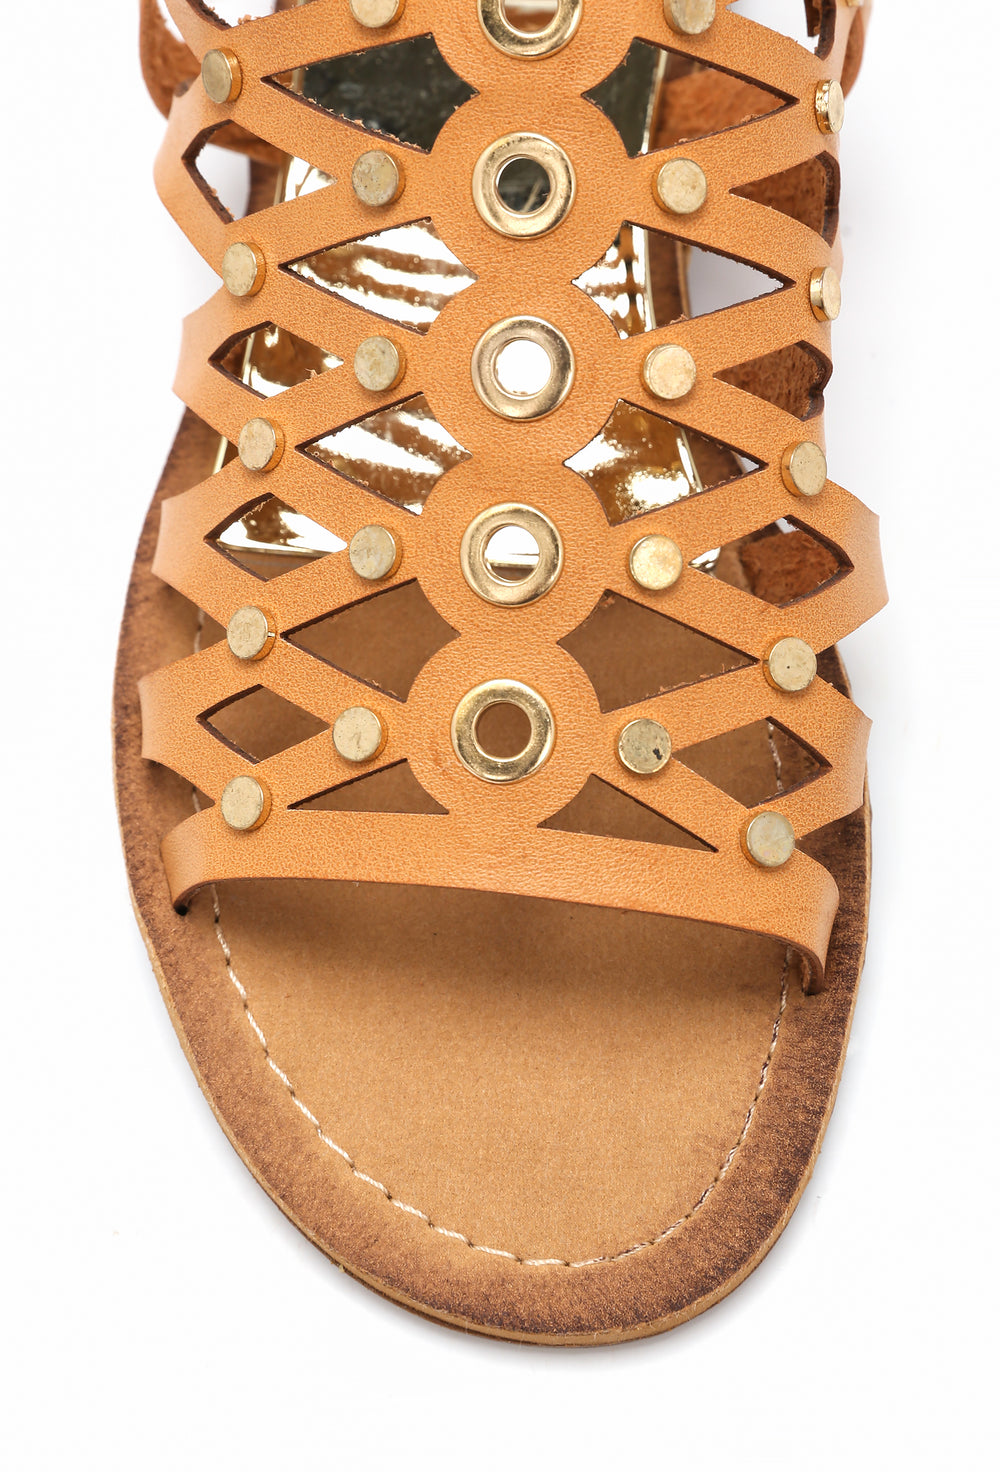 Said And Done Sandal - Camel